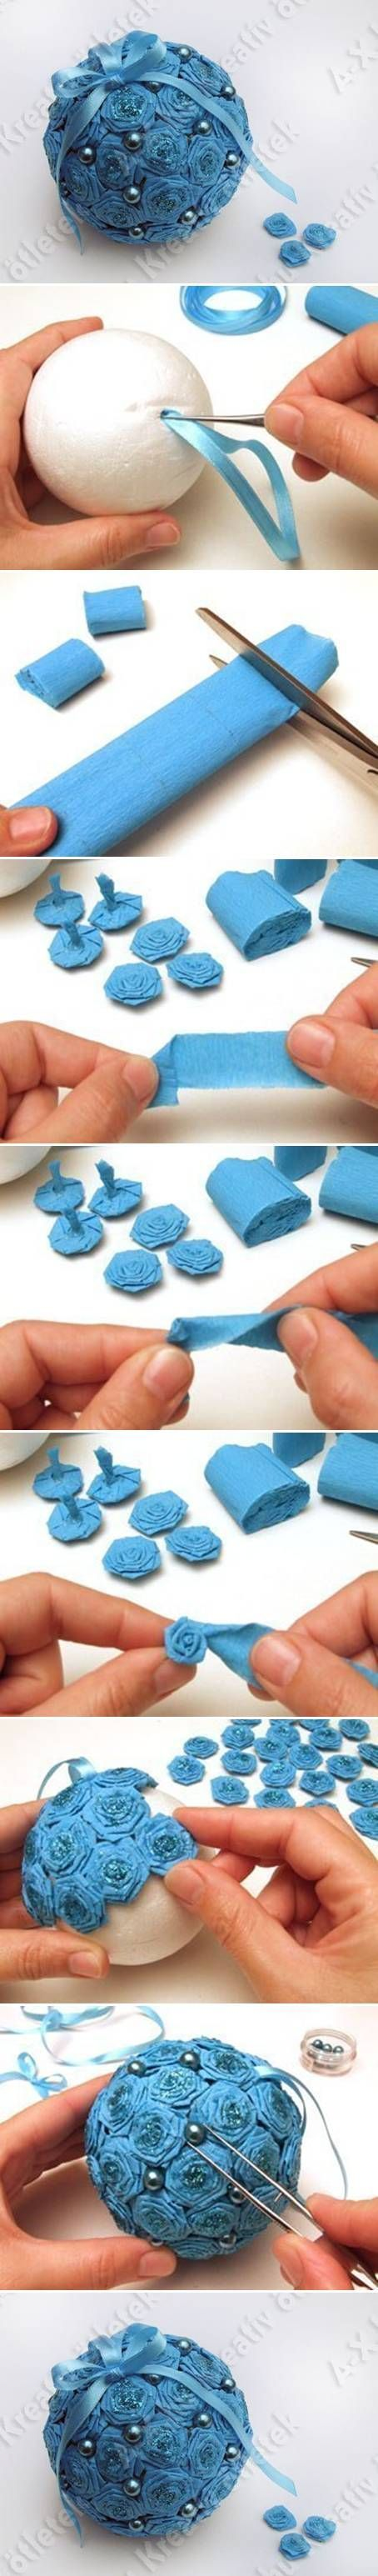 DIY Crepe Paper Flower Ball DIY Crepe Paper Flower Ball